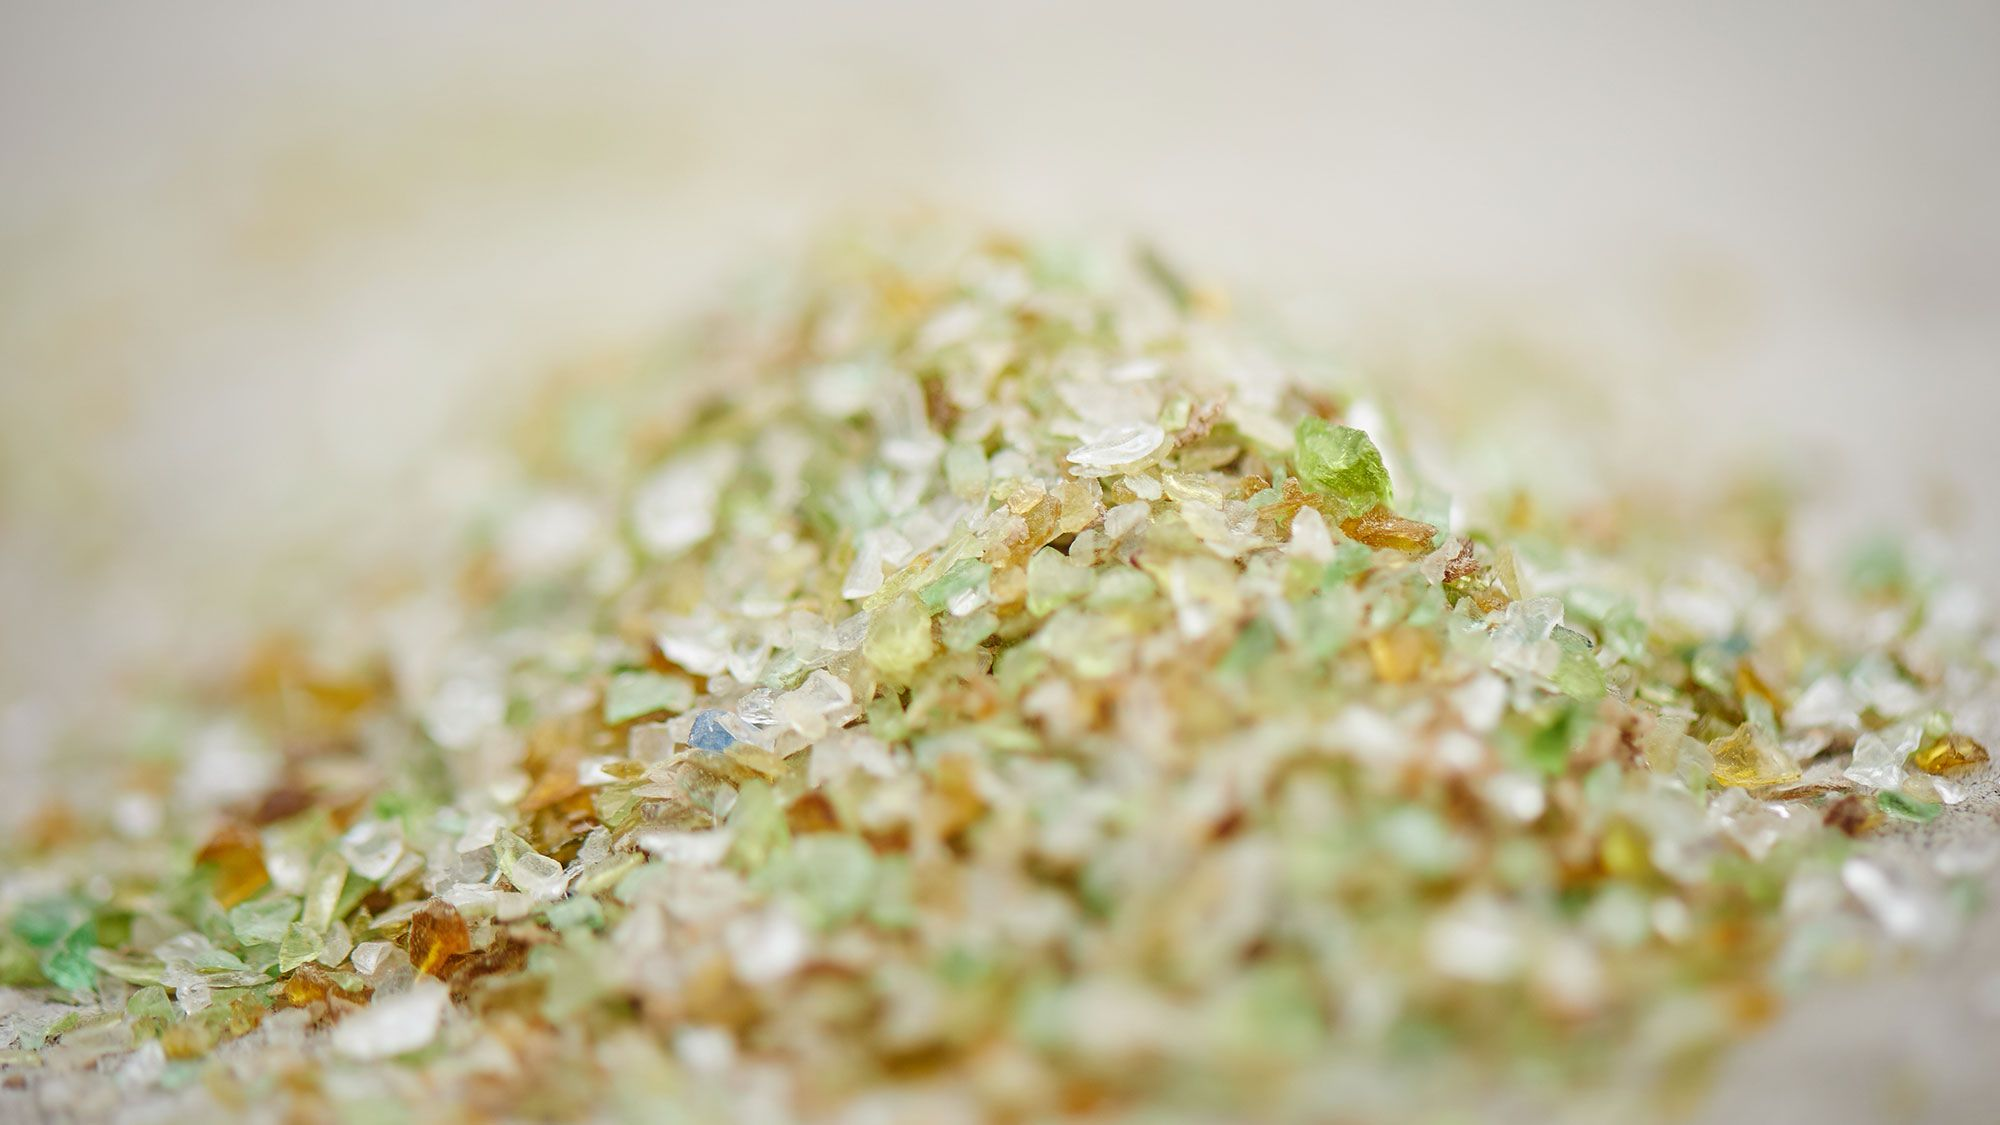 transform your waste into high quality secondary raw materials